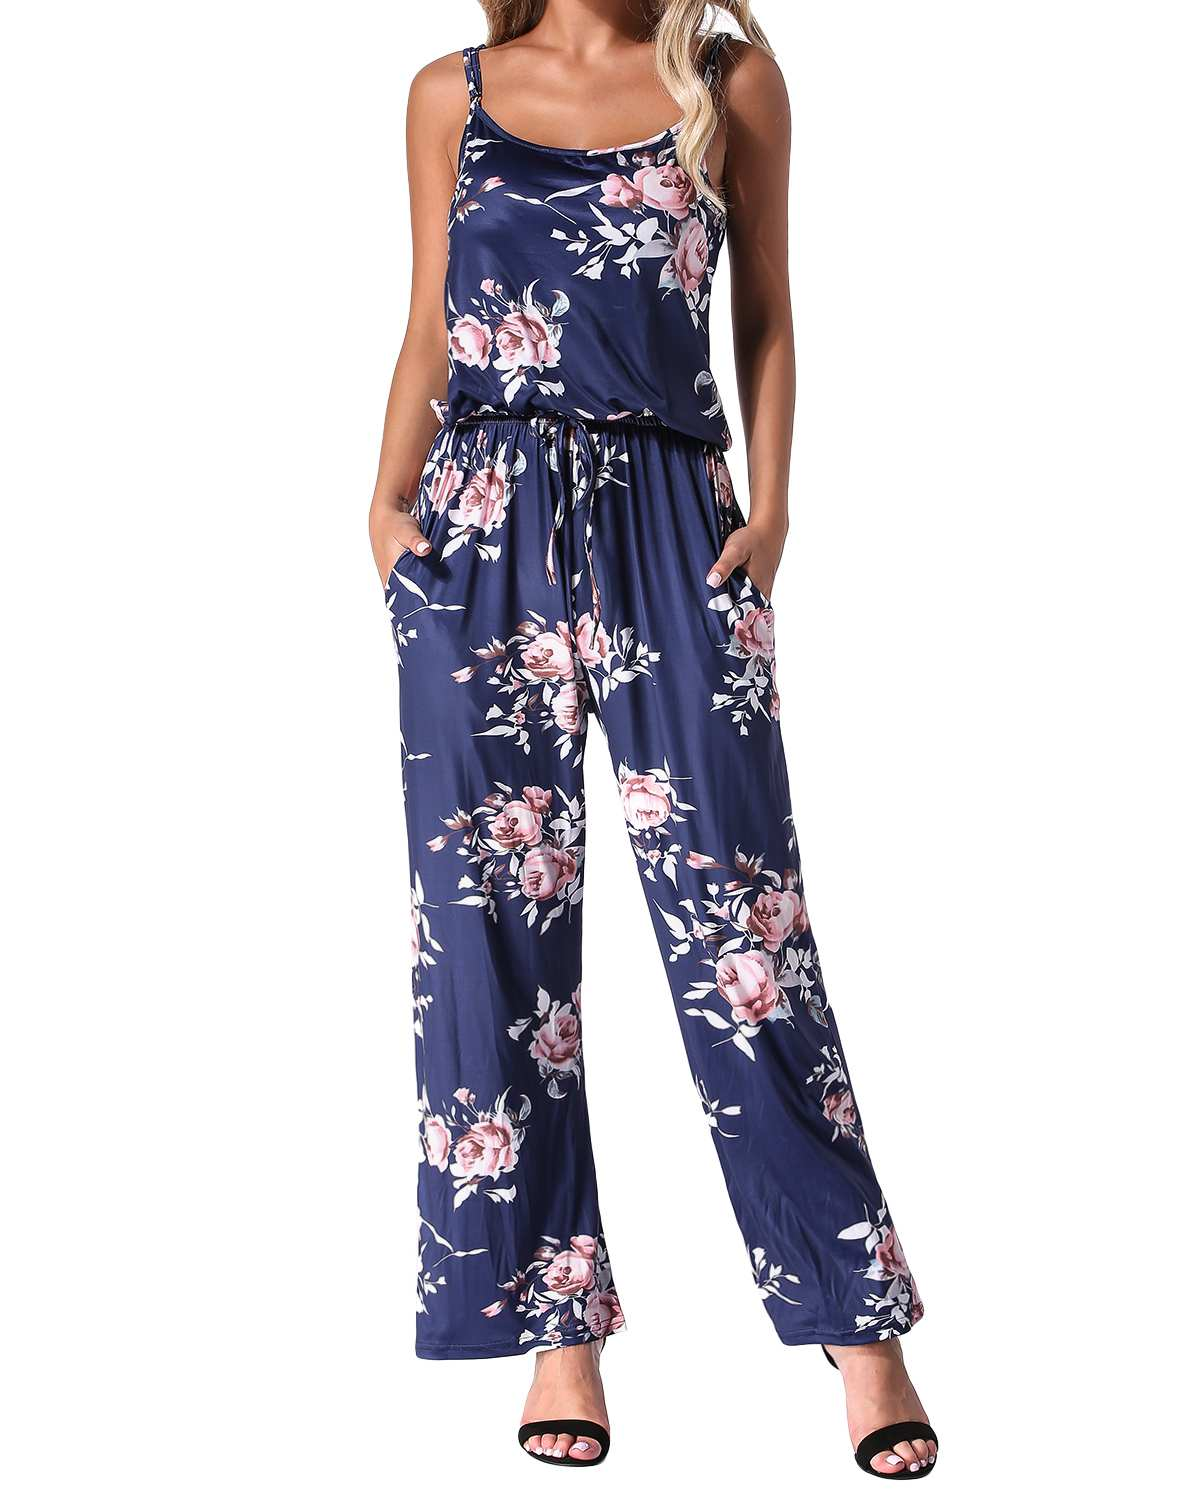 Summer Floral Print Rompers   Jumpsuits   Women 2019 Casual Straight Sexy Backless Long Wide Leg Pants Playsuits Pockets Bodysuits